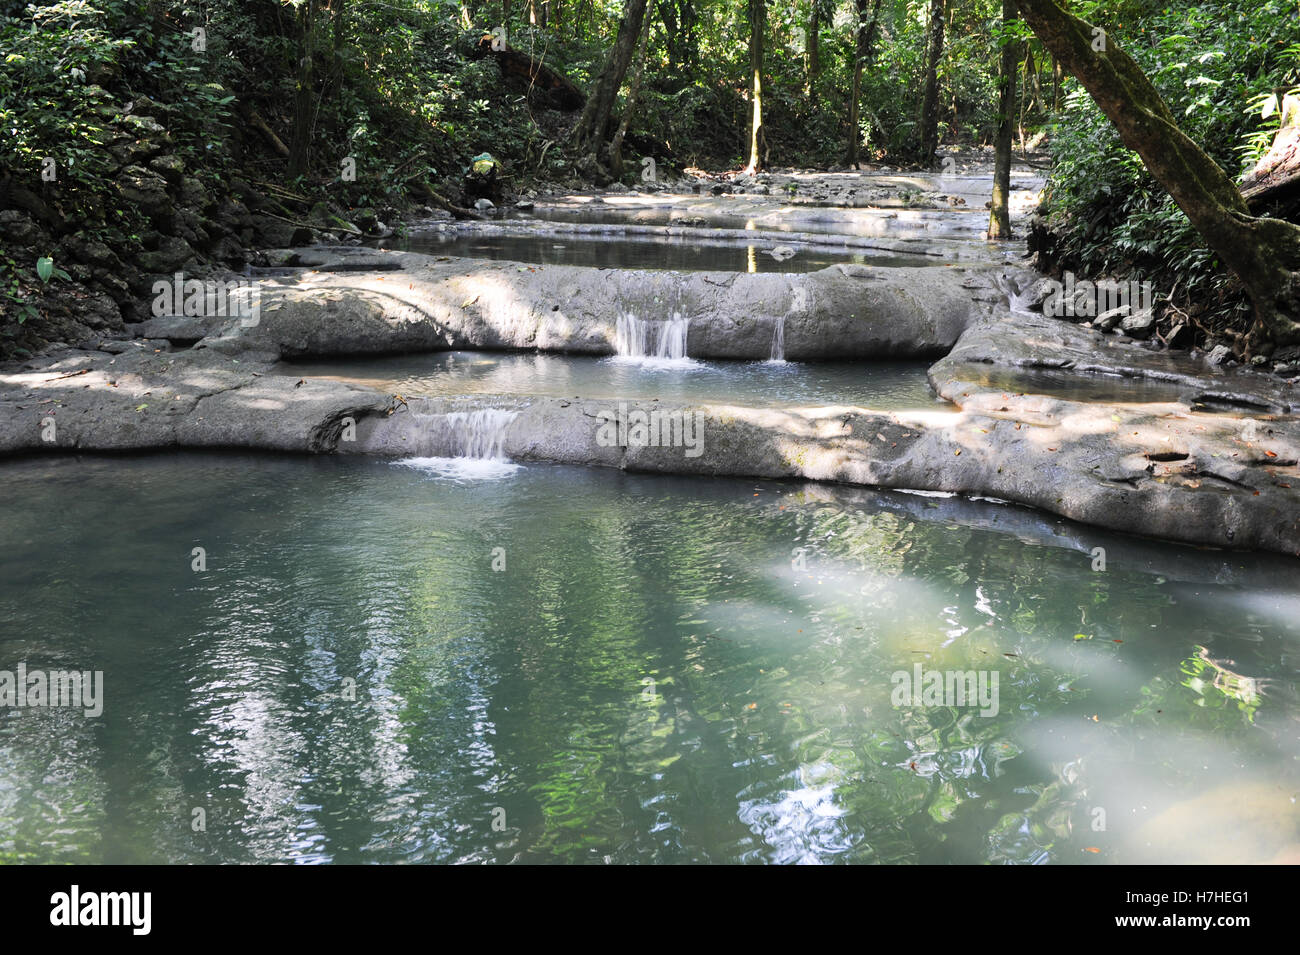 Waterfalls of siete altares on the forest at Livingston on Guatemala - Stock Image